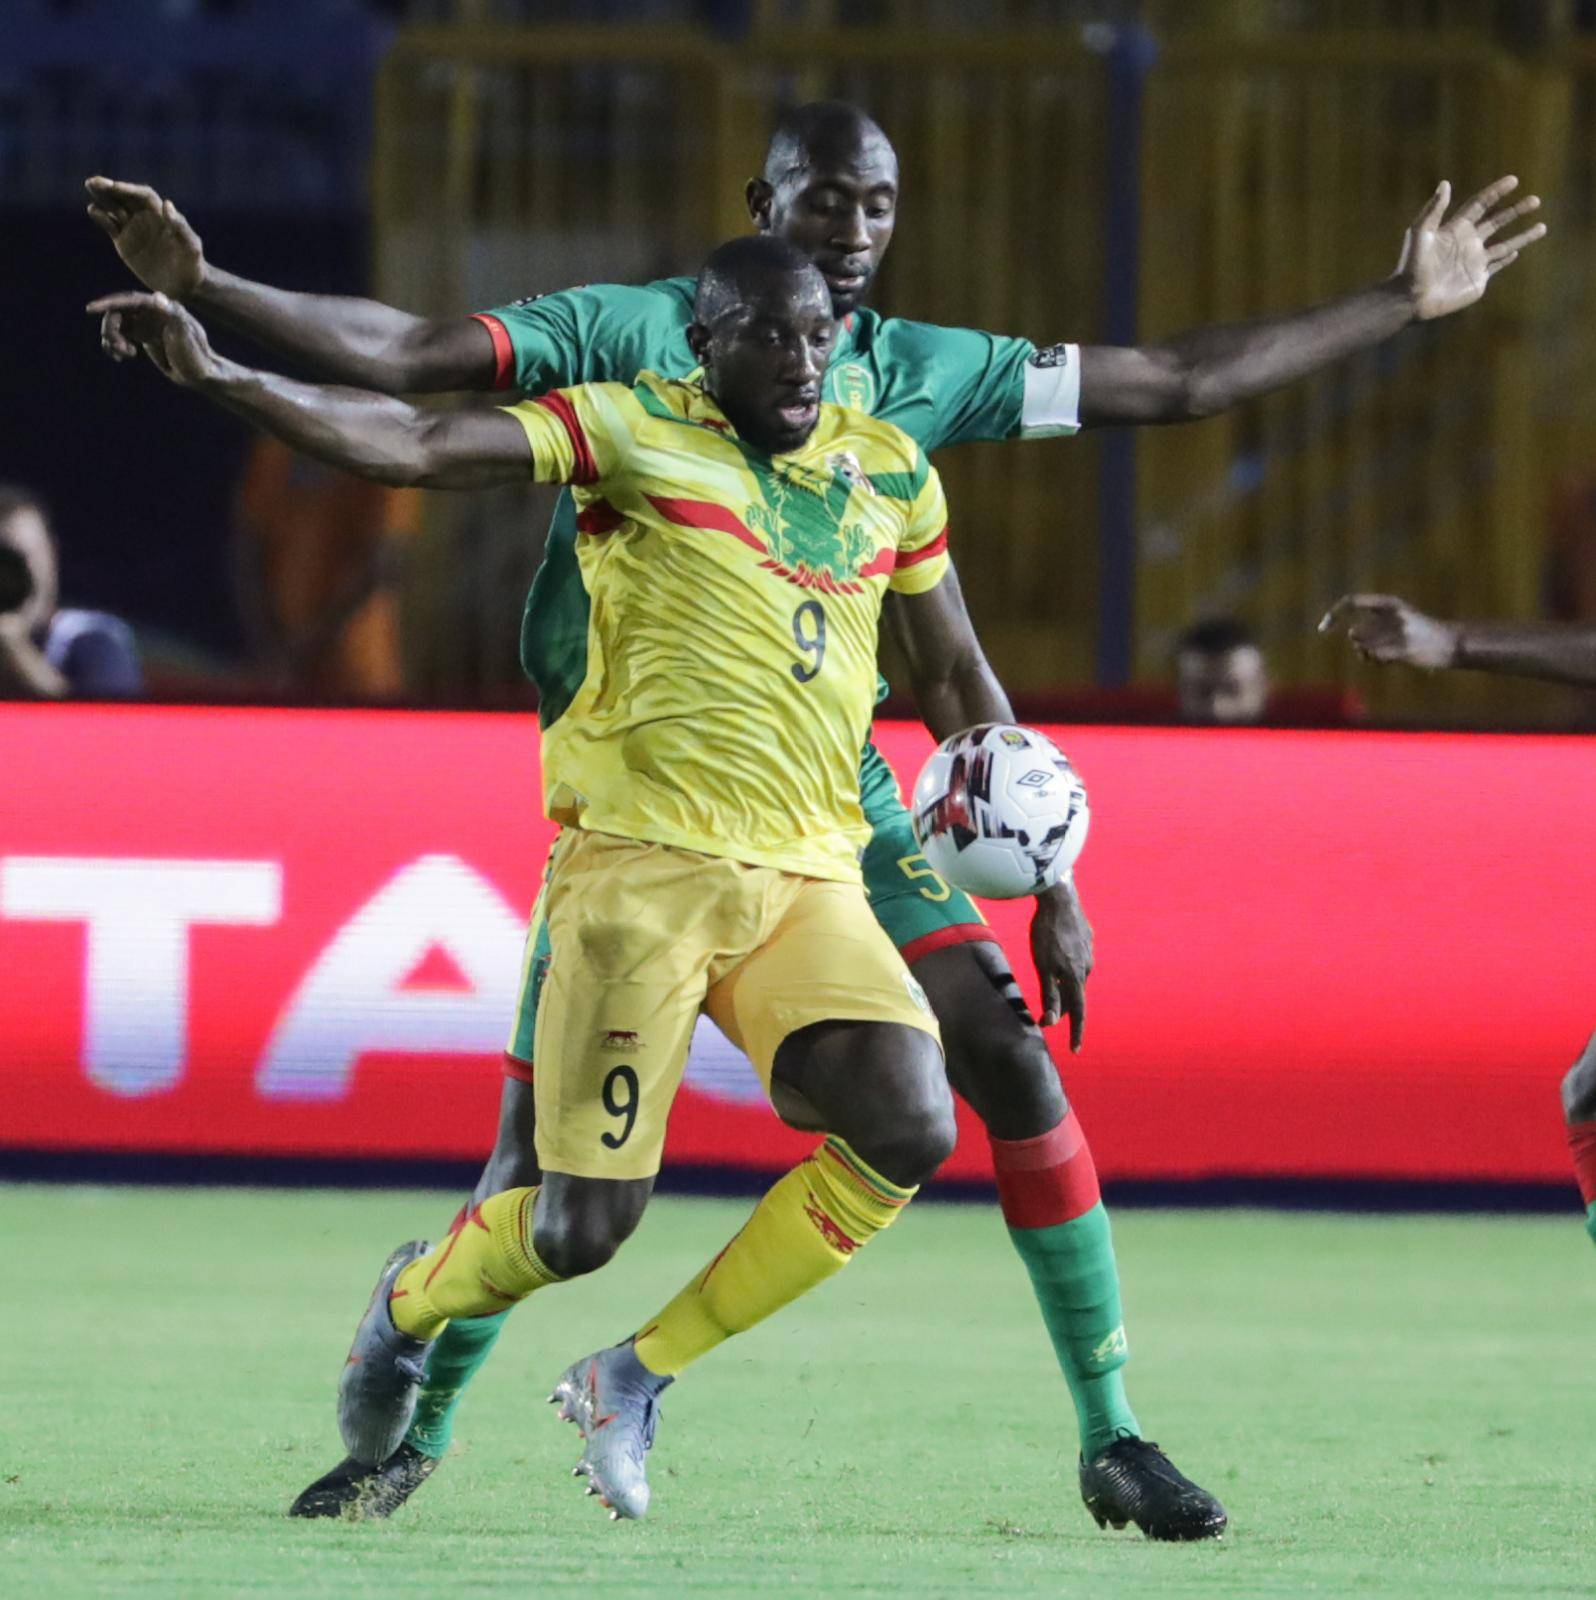 2019 Africa Cup of Nations · Mali vs Mauritania